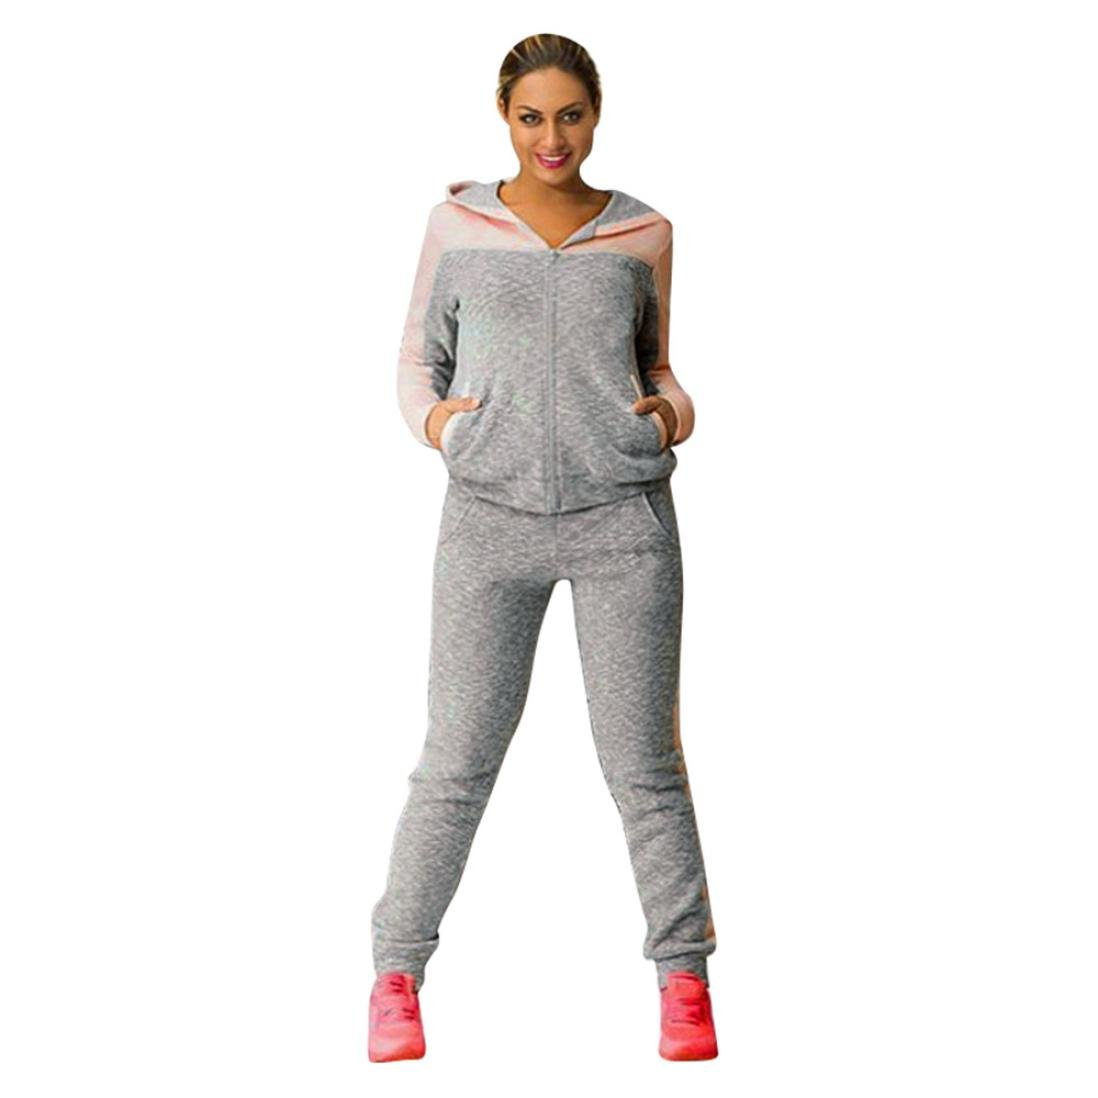 HOMEBABY Women Sports Hooded Sweatshirt Suits, Ladies 2Pcs Tracksuit Casual T-Shirt Tops Gym Yoga Workout Mid Waist Running Pants 2 Piece Outfit Sport Wear Suit Sweatpants